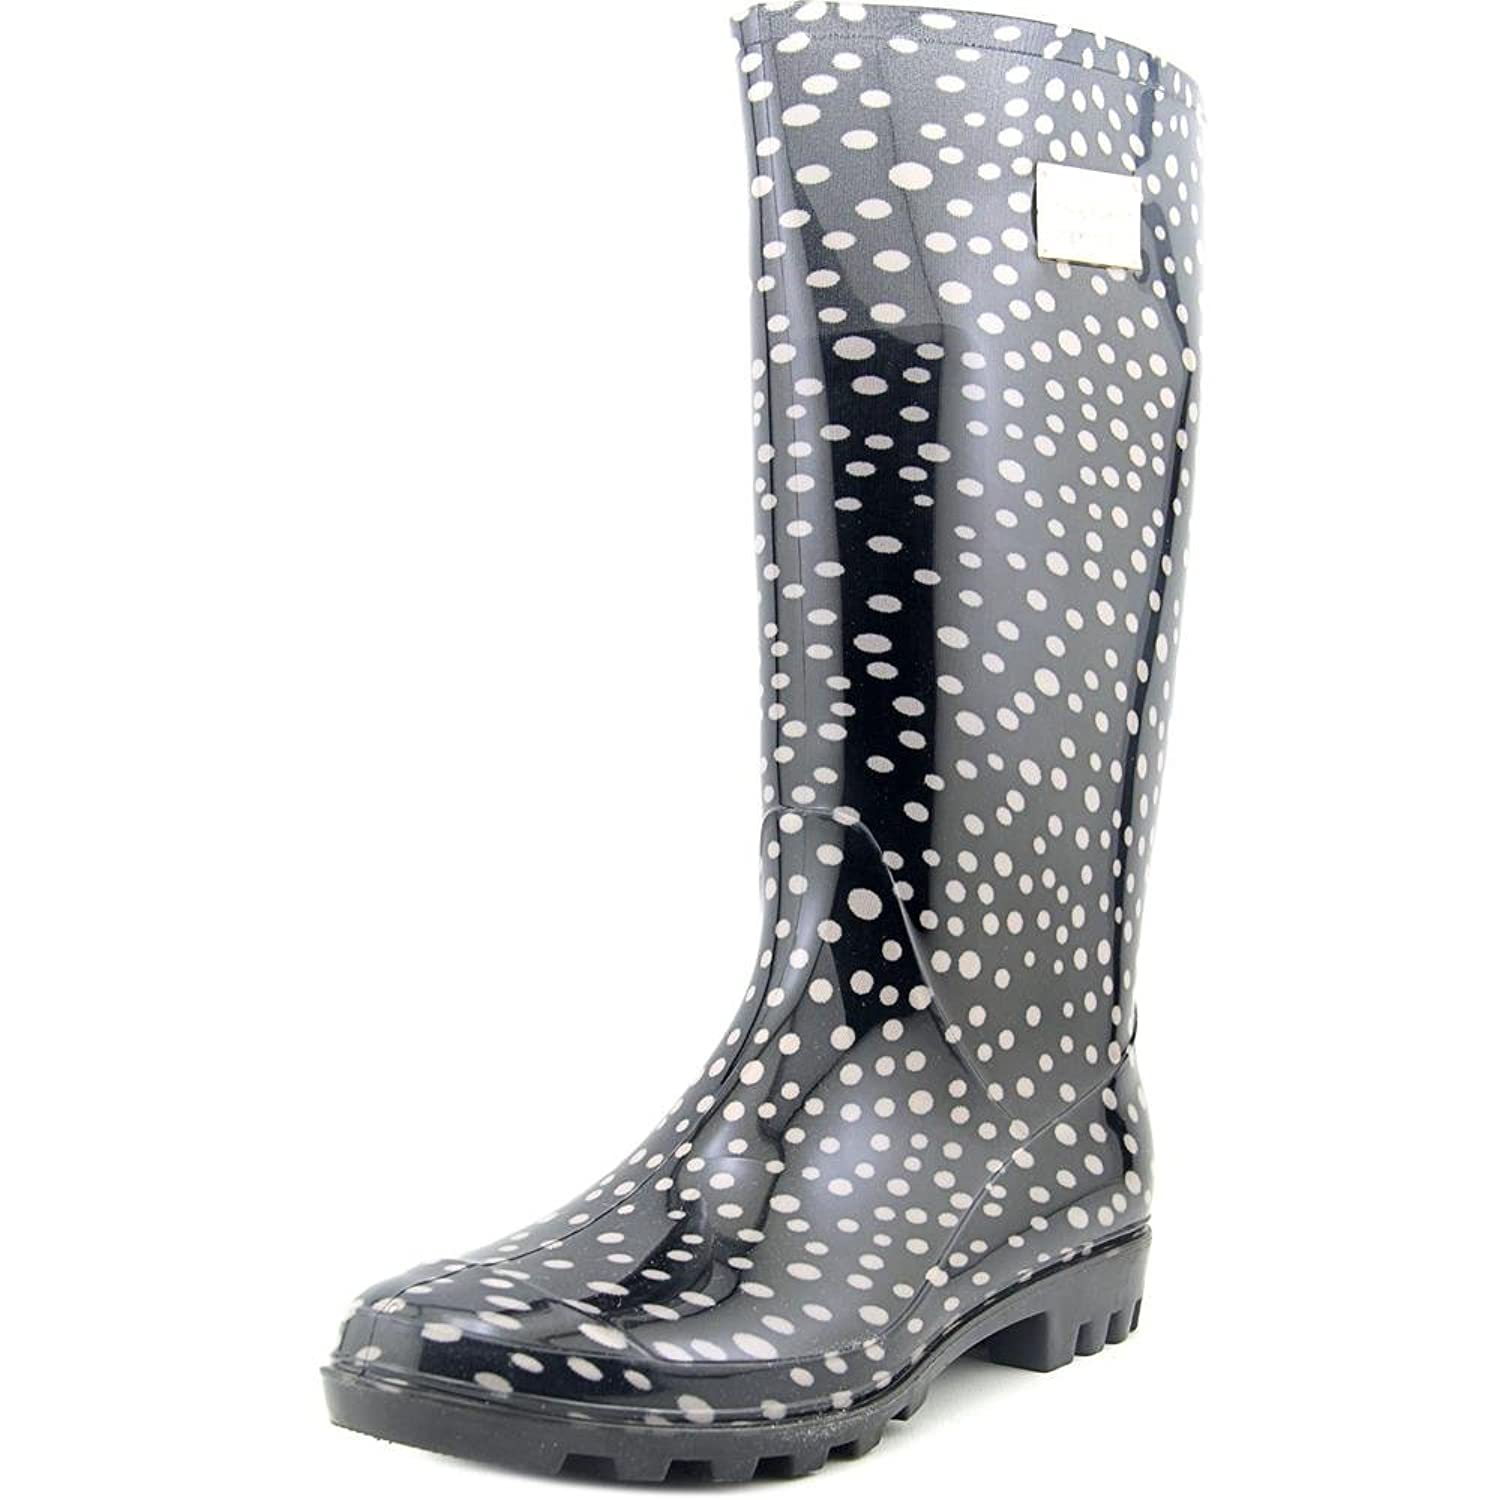 Retro Boots, Granny Boots, 70s Boots Nicole Miller New York Rena Women Round Toe Synthetic Rain Boot $44.69 AT vintagedancer.com